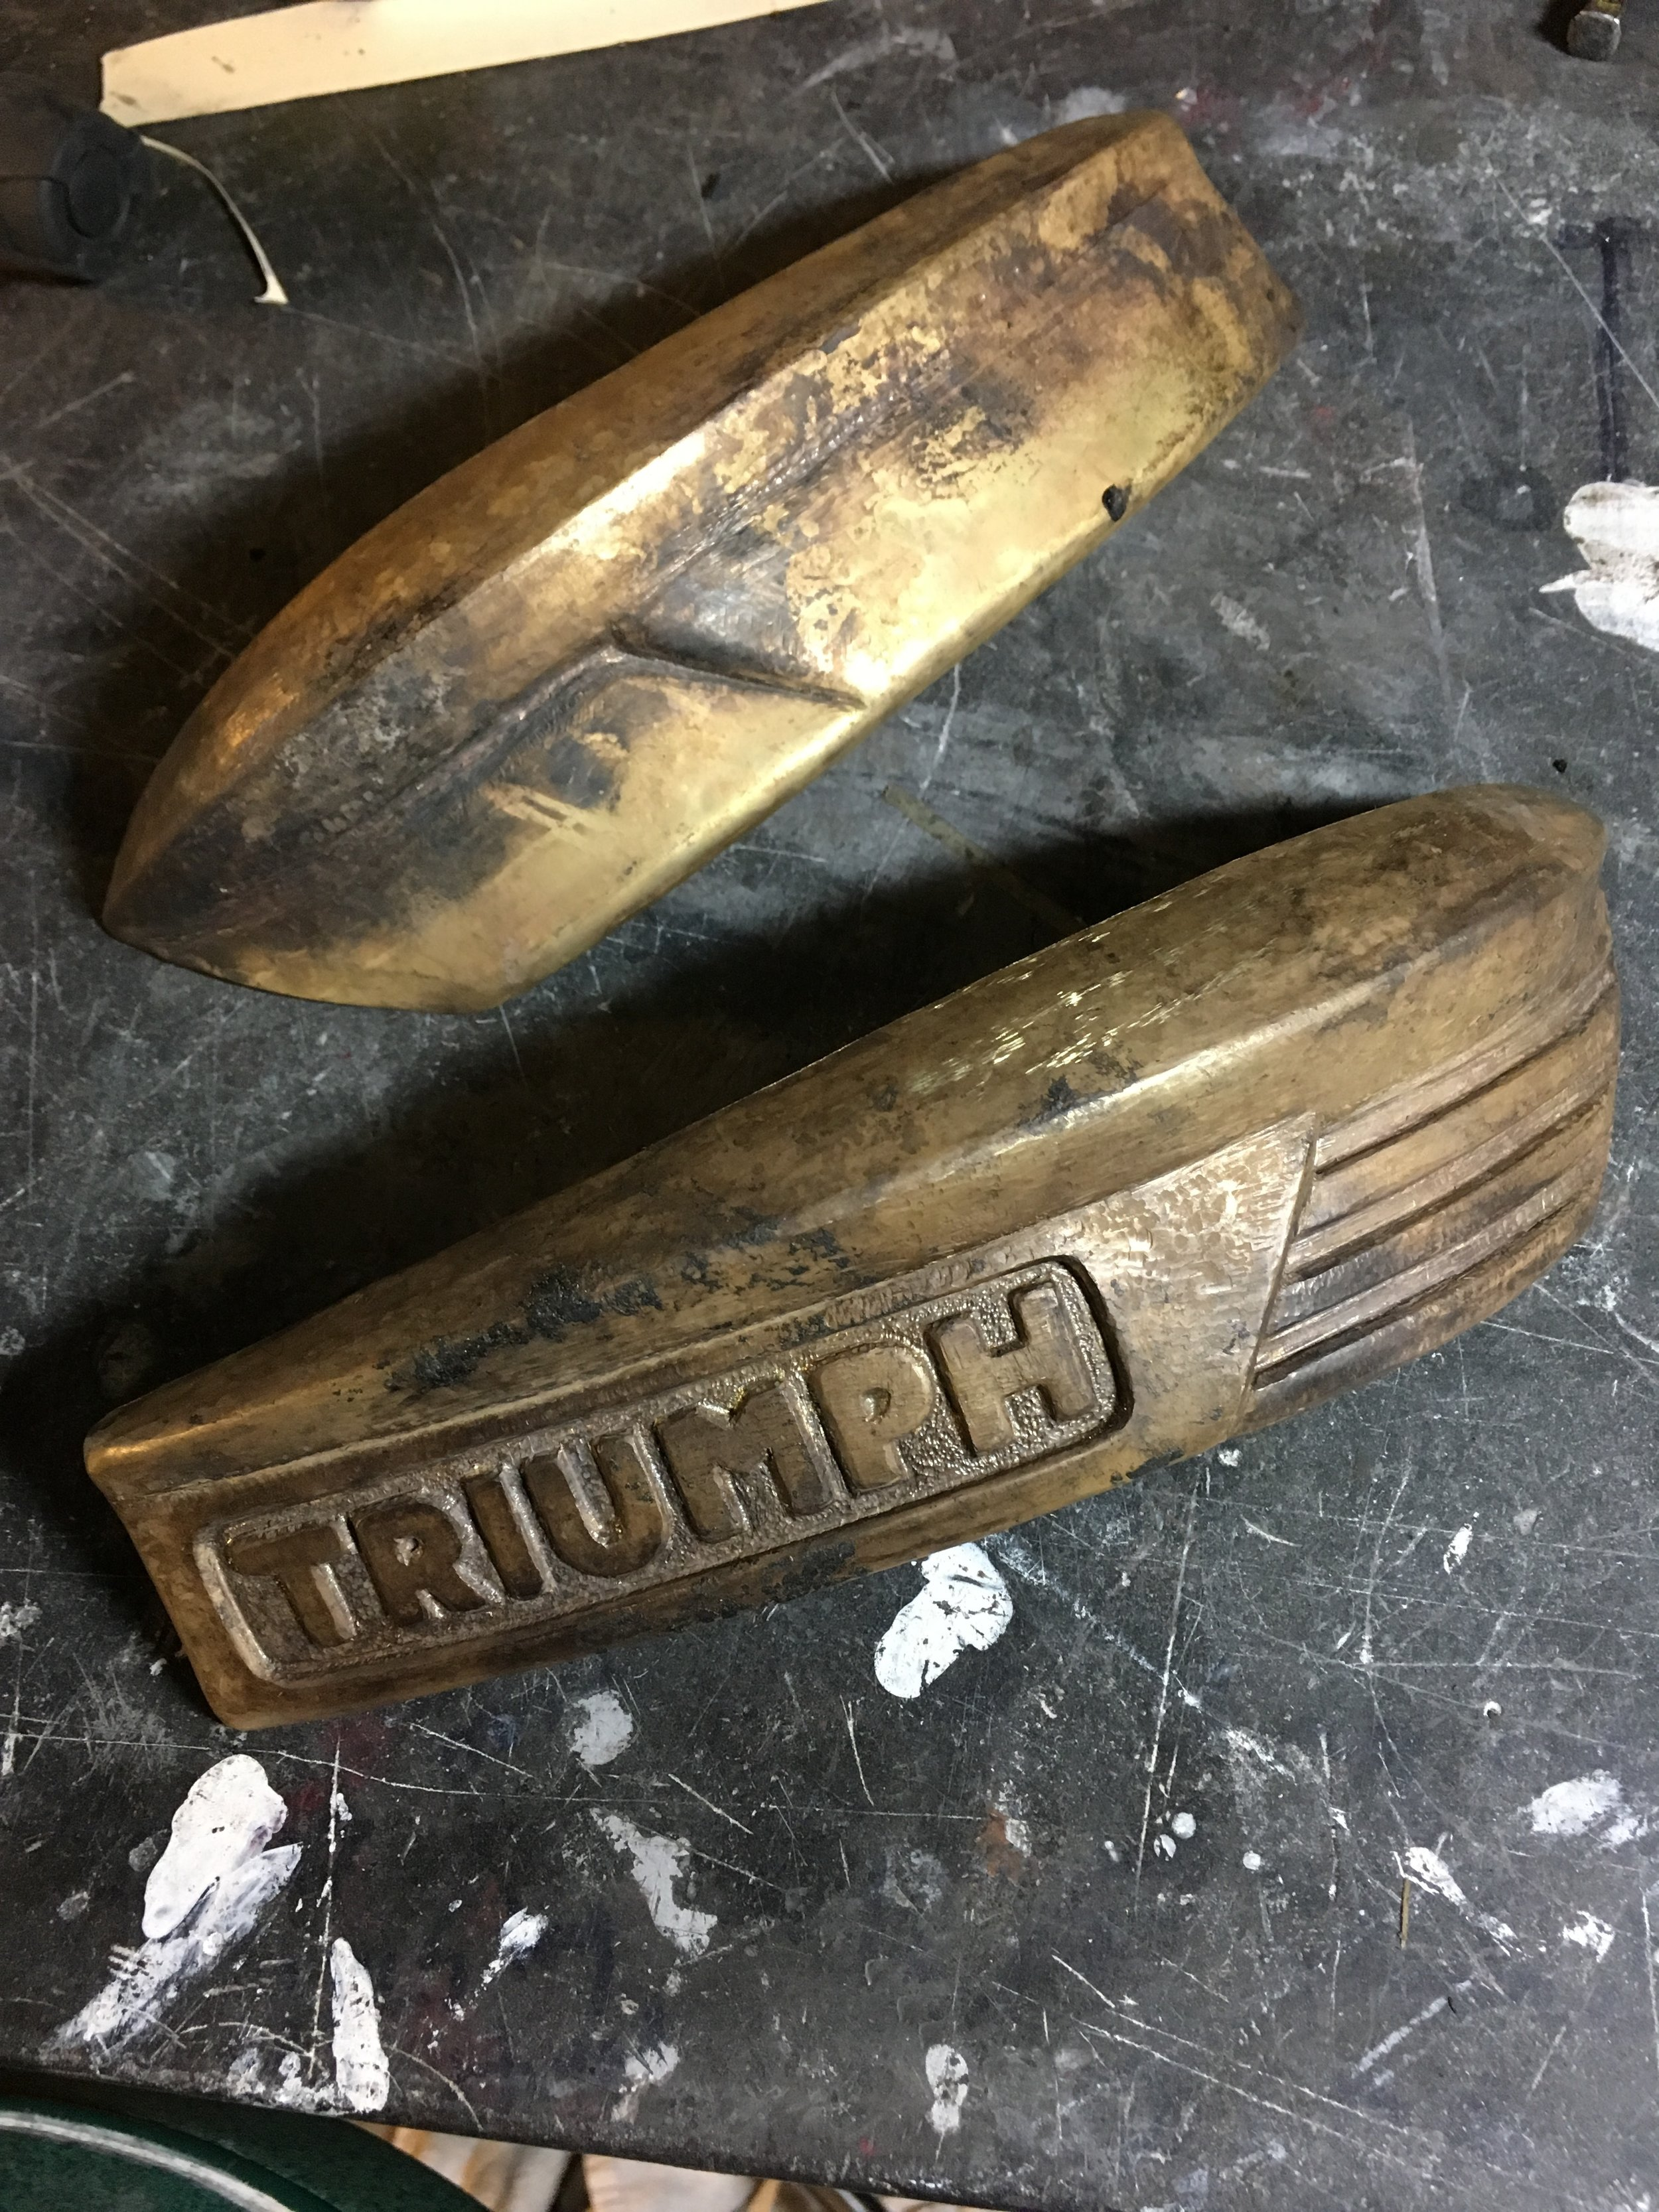 Over fifty hours in the pair at this point. There will be some more detailing on the right badge, mostly texturing the surfaces. Still trying to decide whether to go with a hammered or sanded and polished finish. There is a good chance the dark coloring will be used to match a number of other brass part regardless of which surface treatment is used..